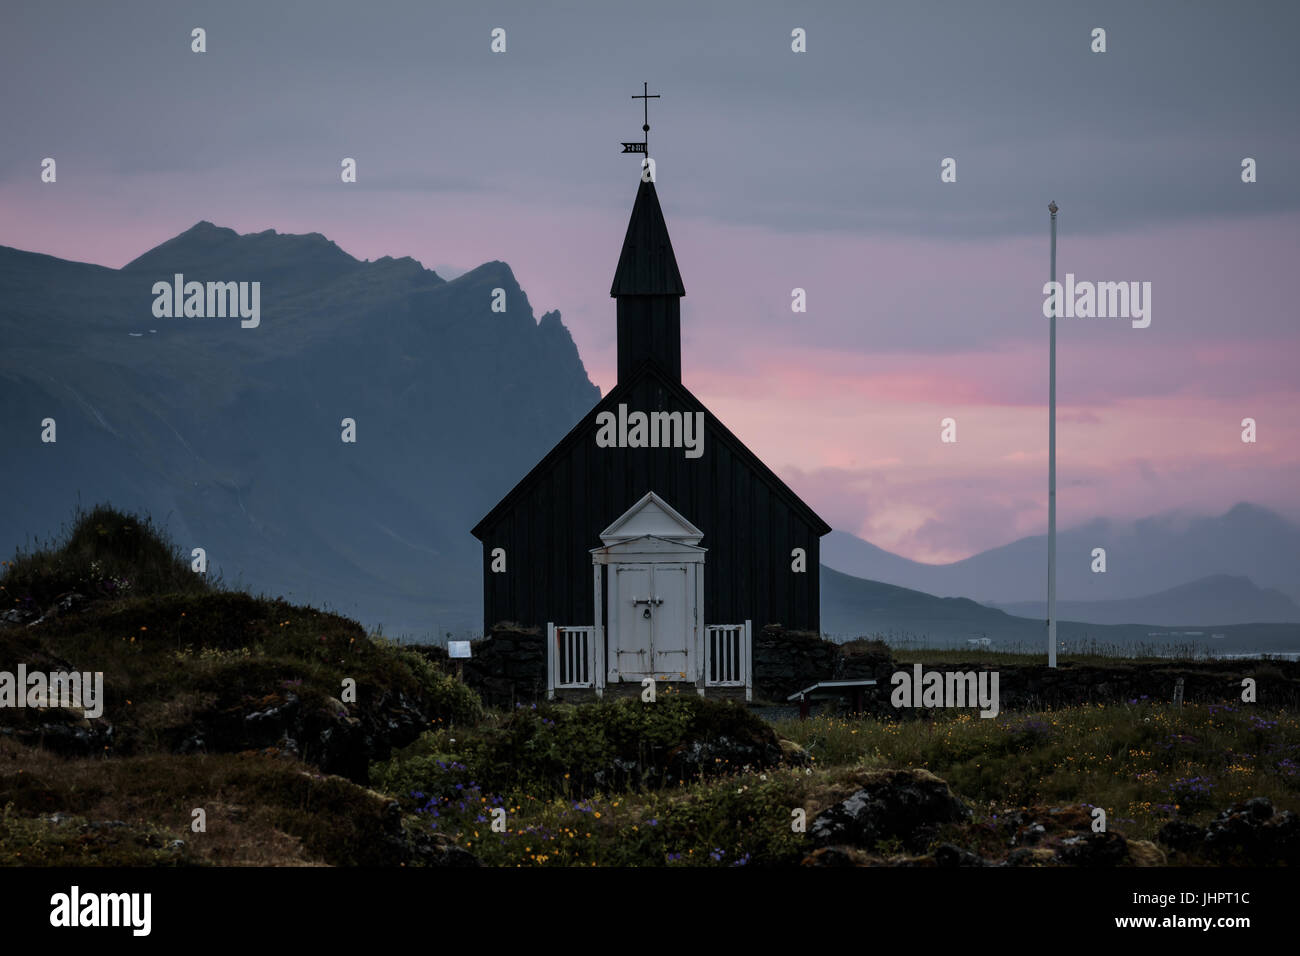 The Black Church in Iceland - Stock Image